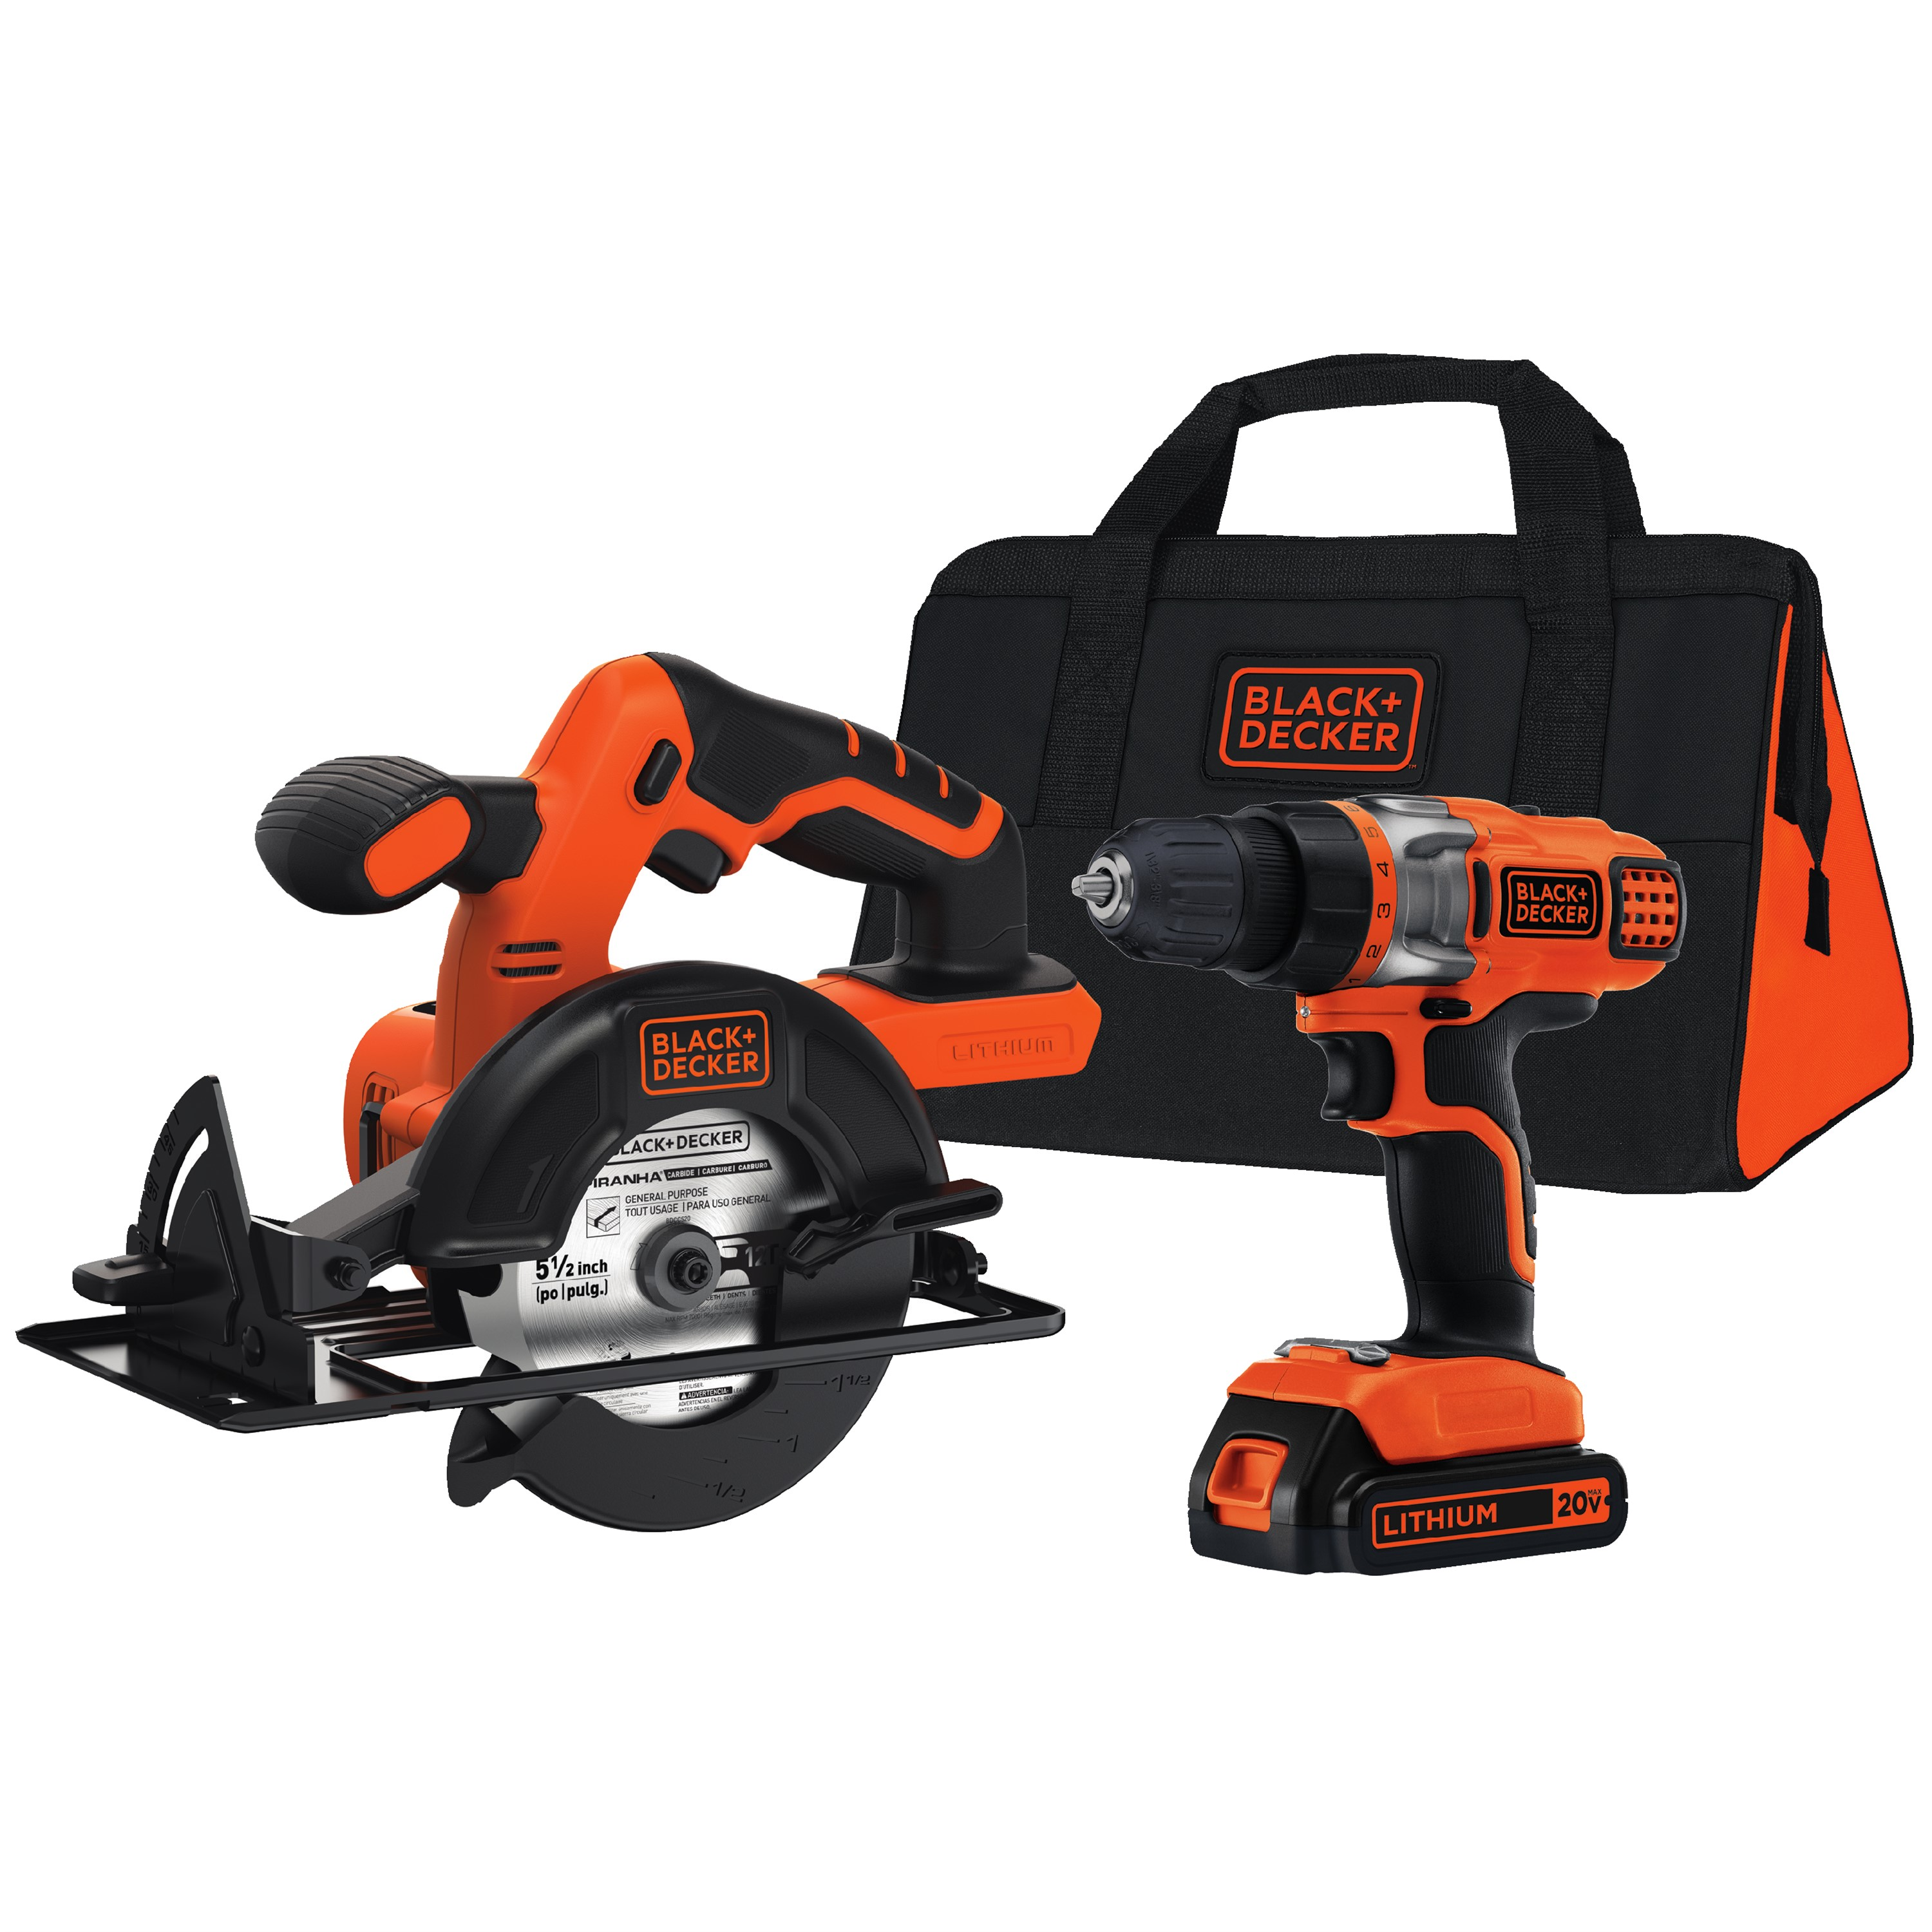 BLACK+DECKER BDCD220CS 20-Volt MAX* Lithium Ion Drill & Circular Saw Combo Kit